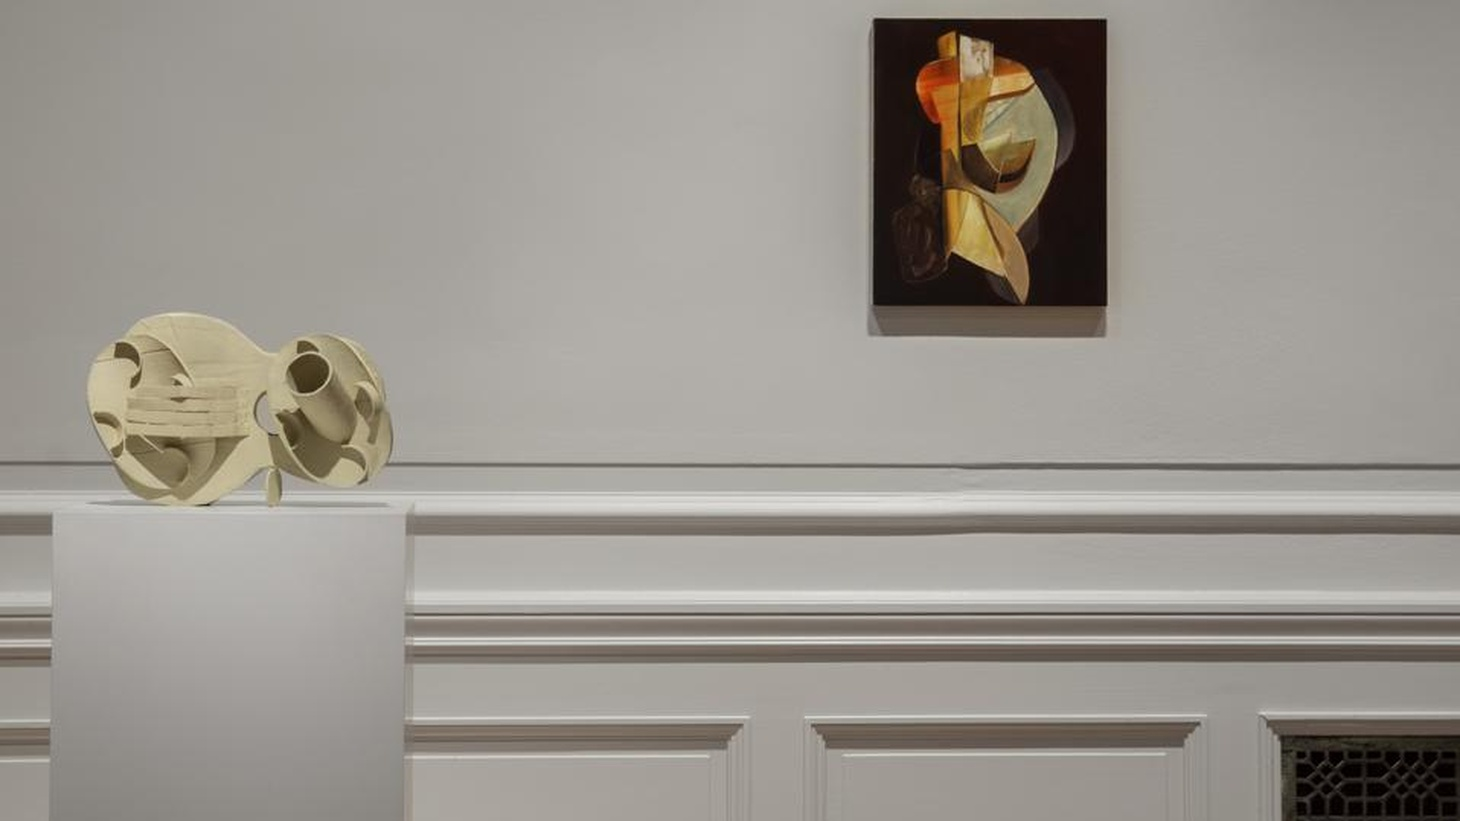 Hunter Drohojowska-Philp is impressed by the contemporary art on display in the 19th century mansion of the Huntingtons